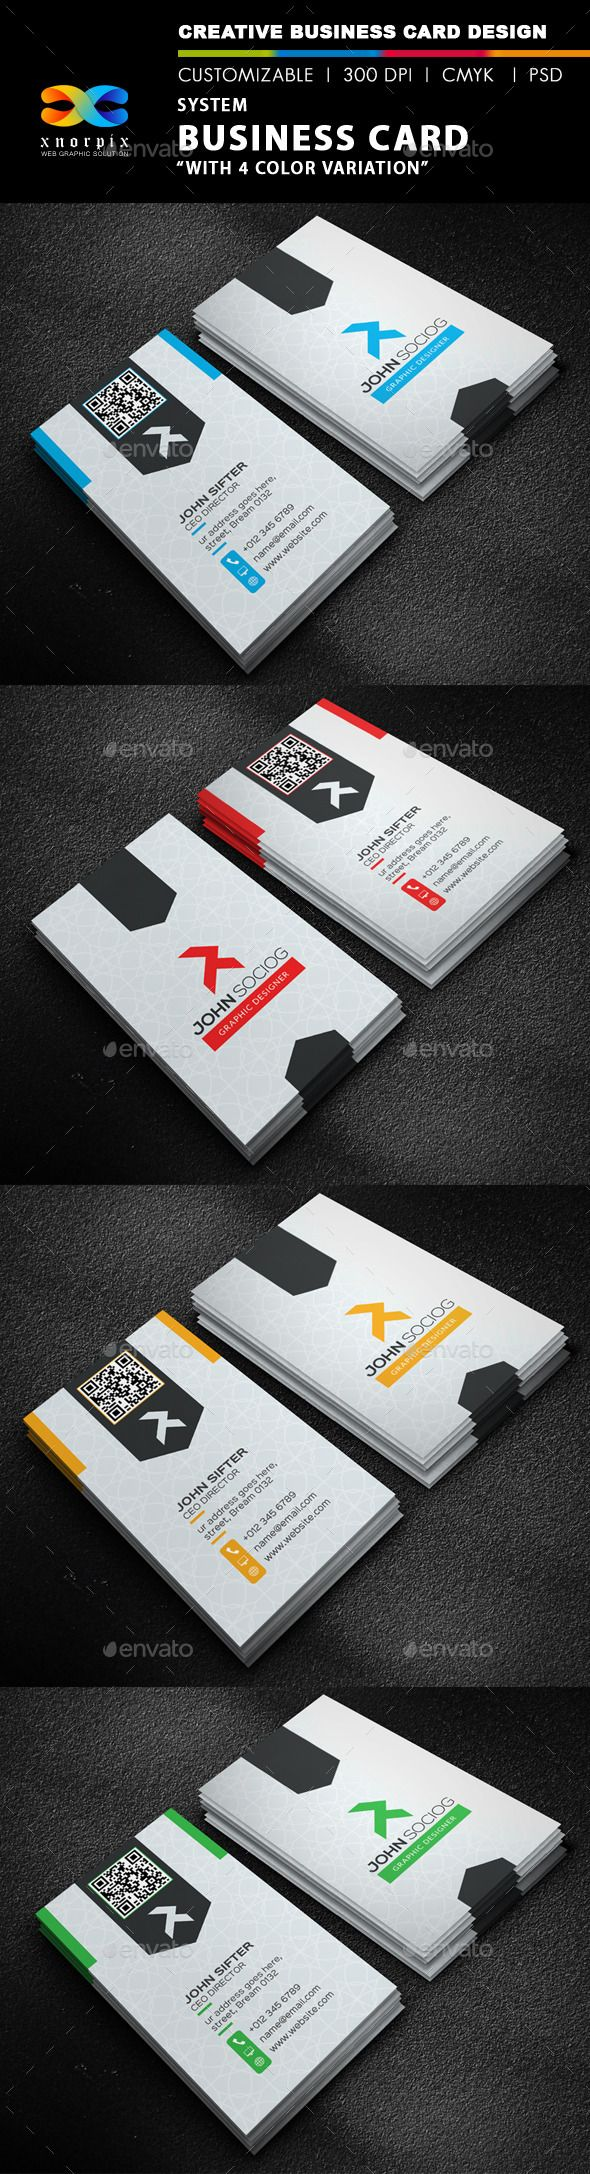 Personal business card card templates business cards and template personal business card template psd buy and download httpgraphicriver itempersonal business card9755699refksioks reheart Image collections